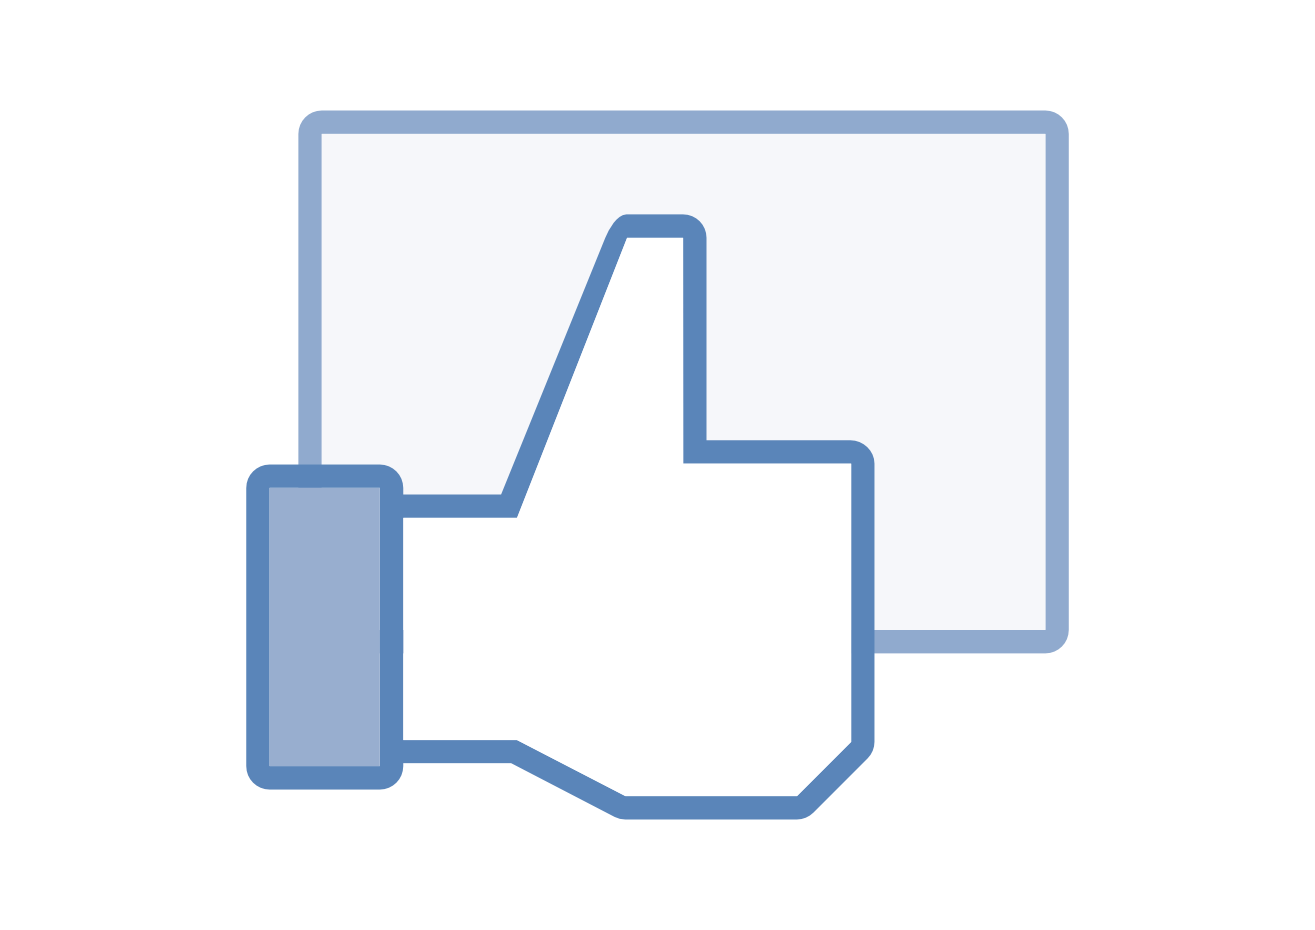 Facebook Like Icon Png image #4162